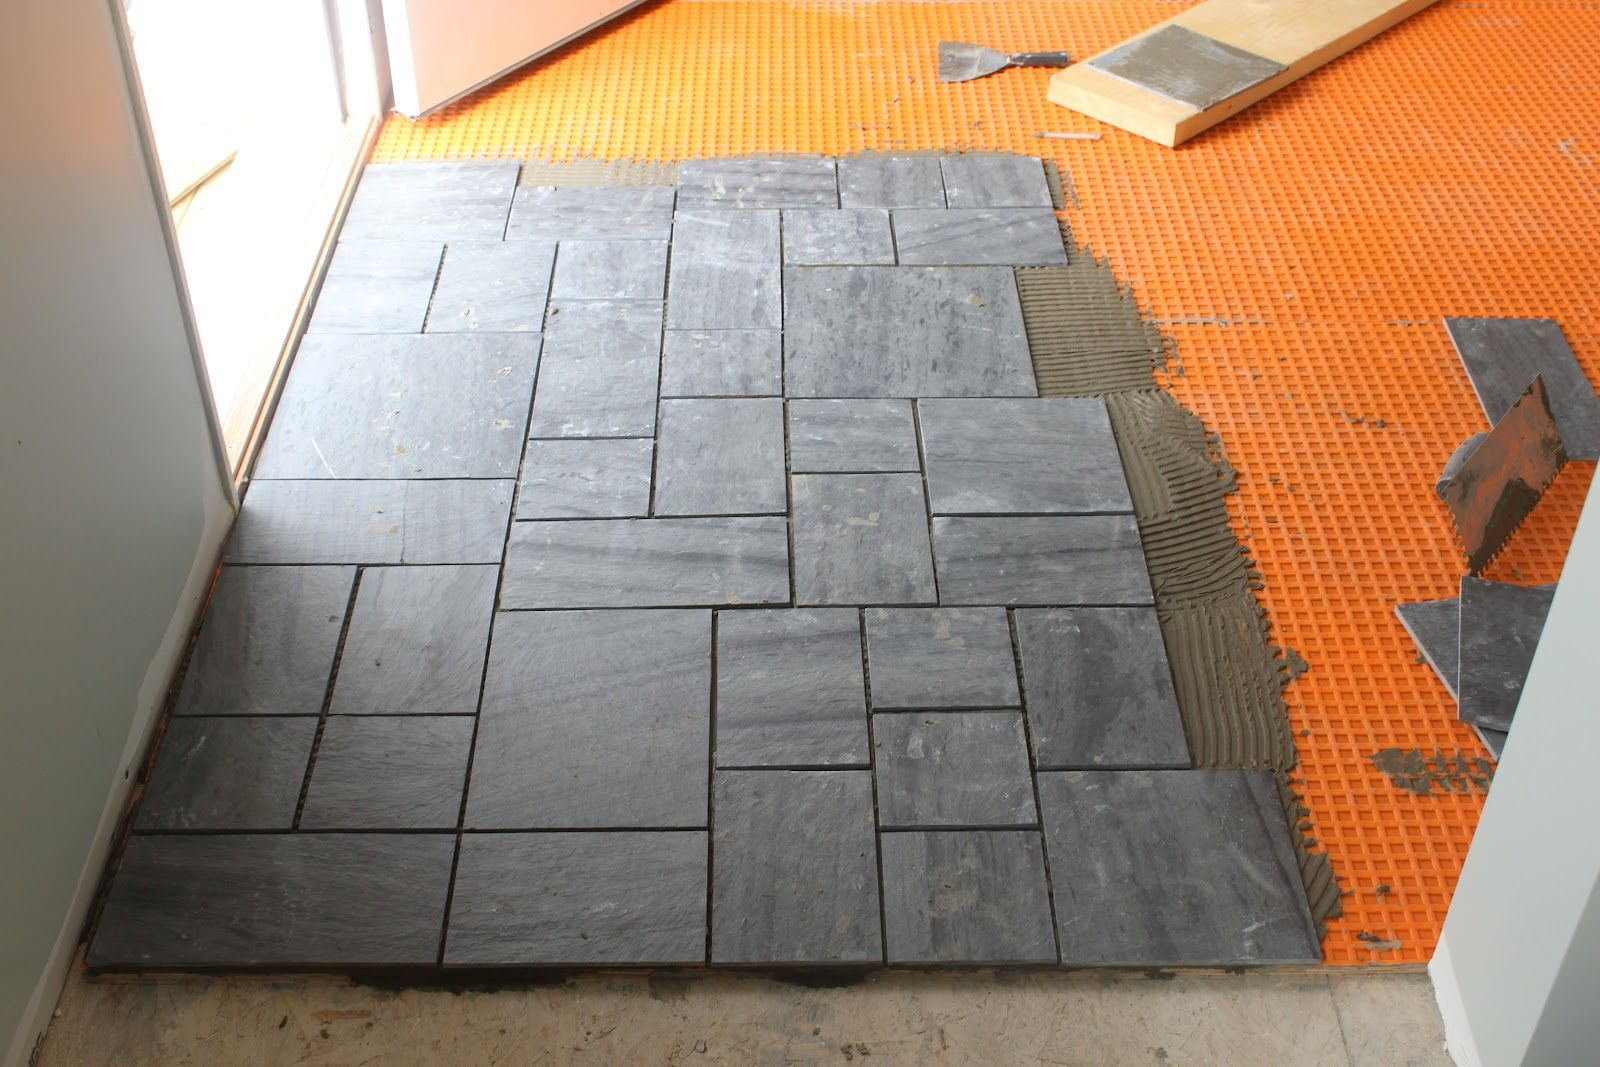 Avente tile talk installing a slate tile floor hearth ideas avente tile talk installing a slate tile floor dailygadgetfo Images